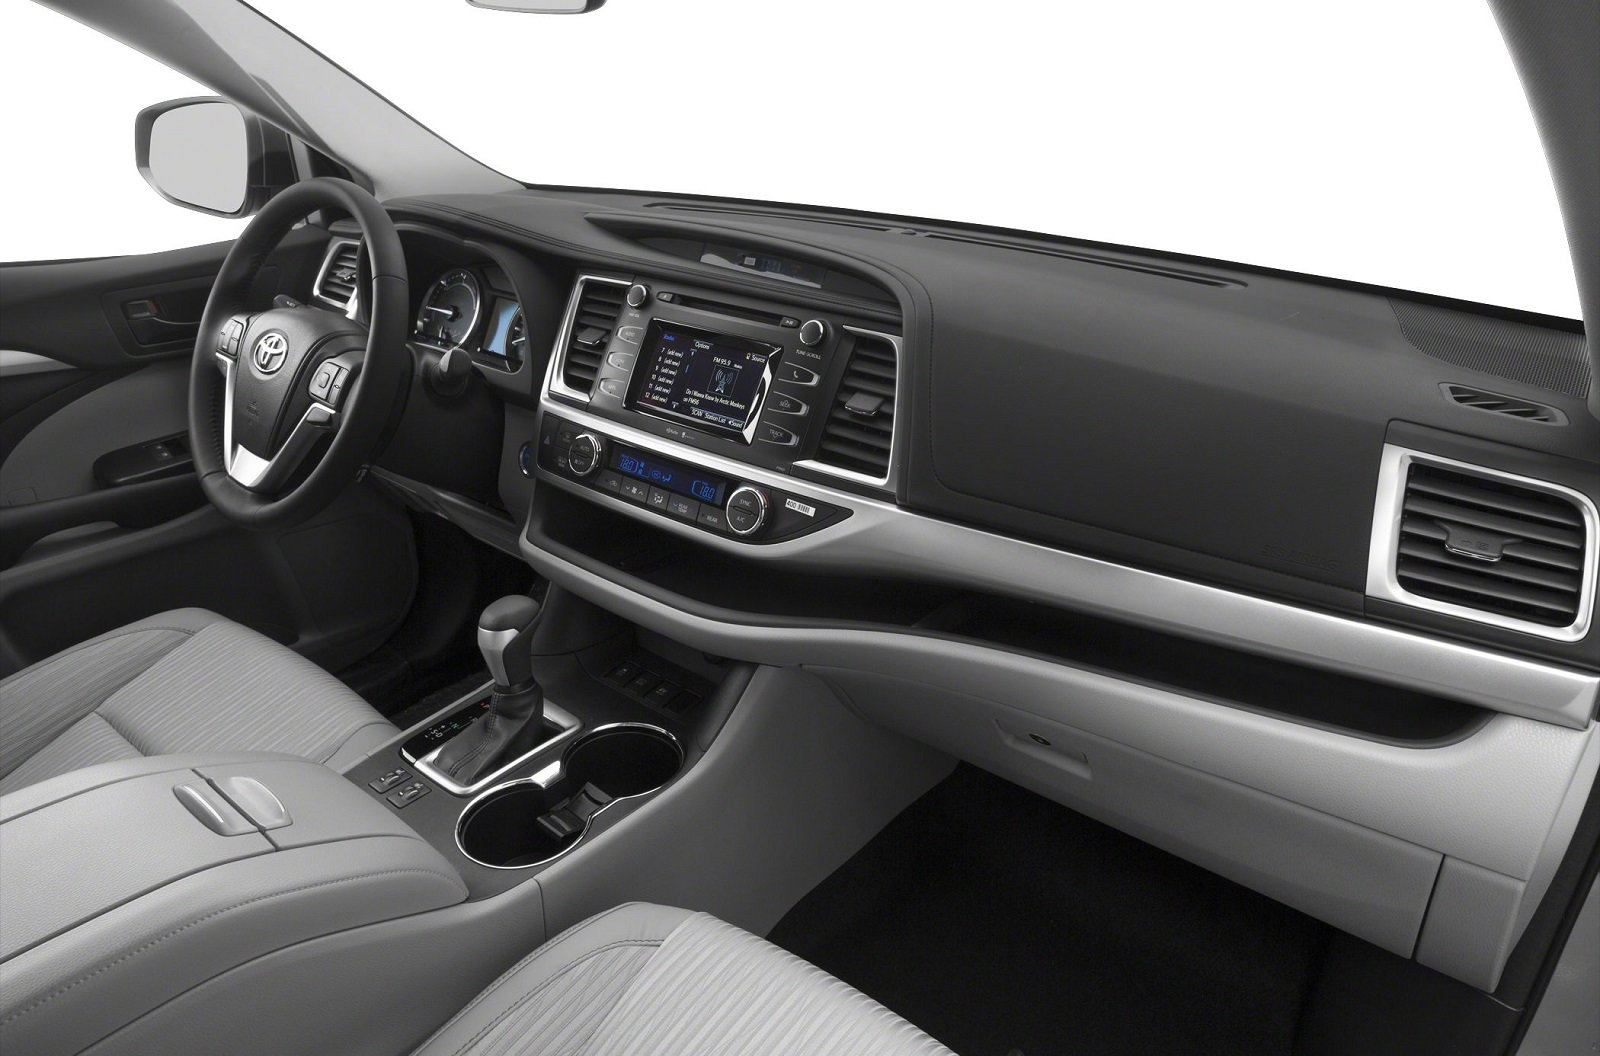 2015 Toyota Highlander Styles Amp Features Highlights